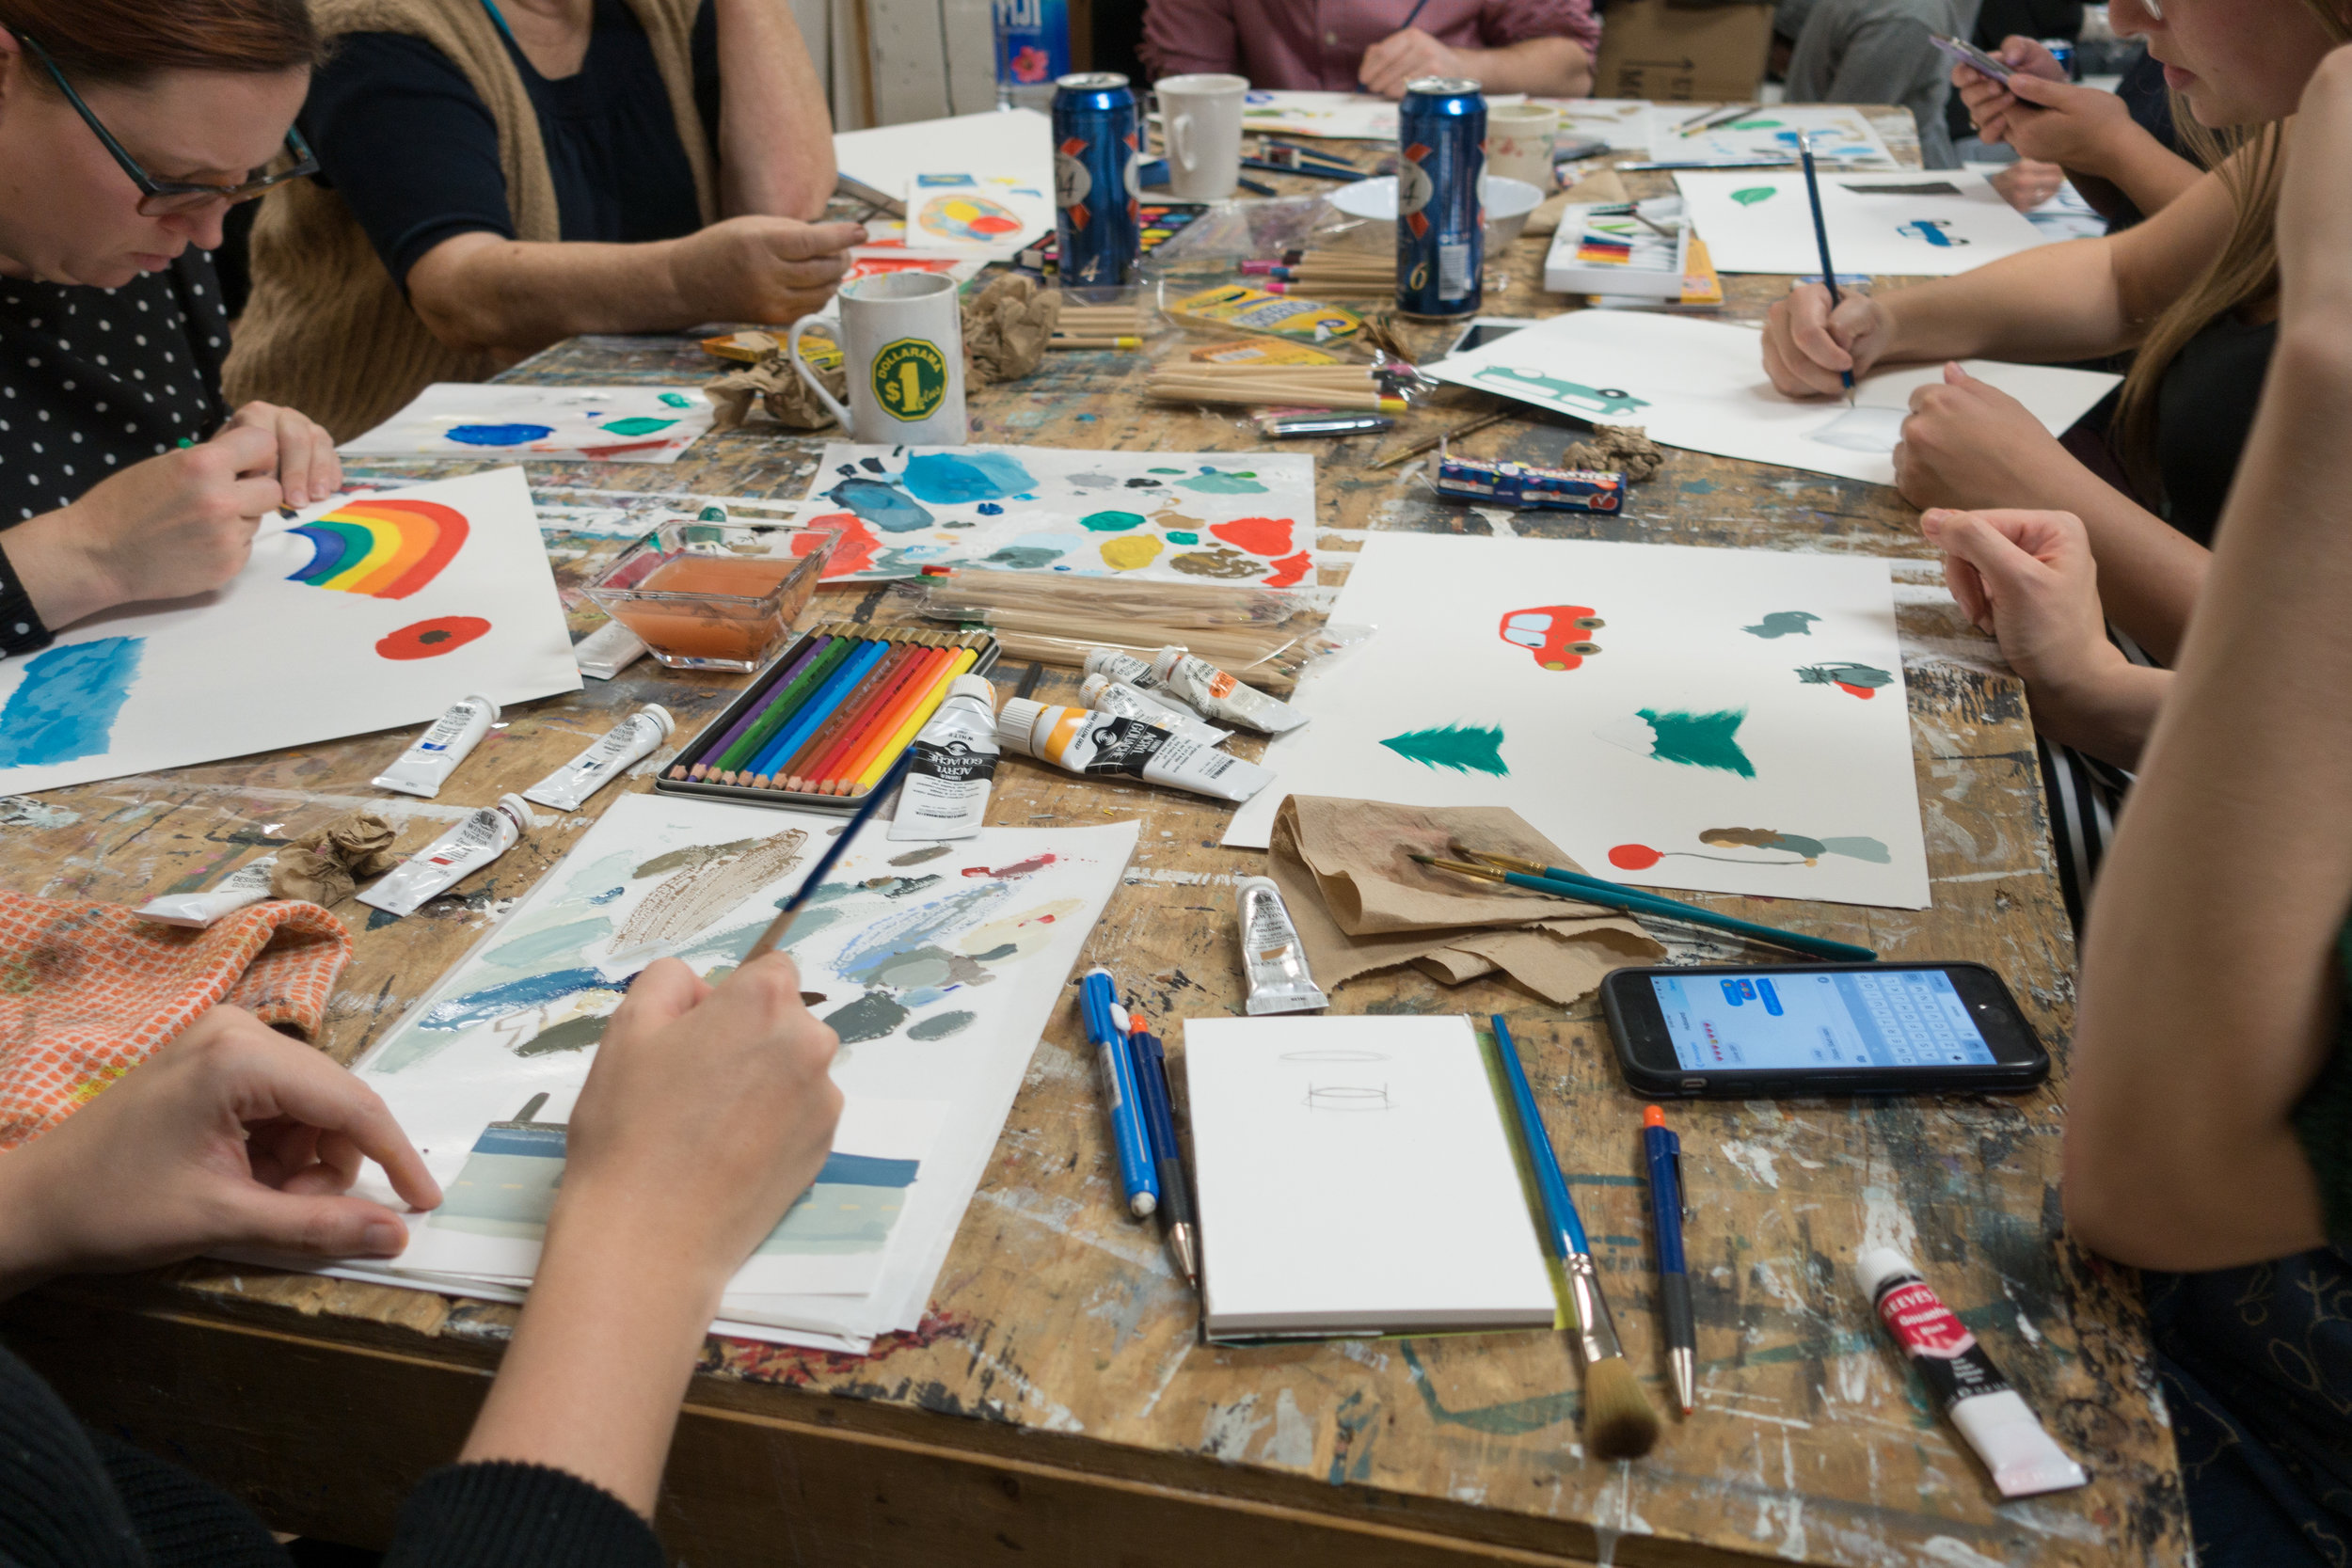 Illustration Workshop, 2015